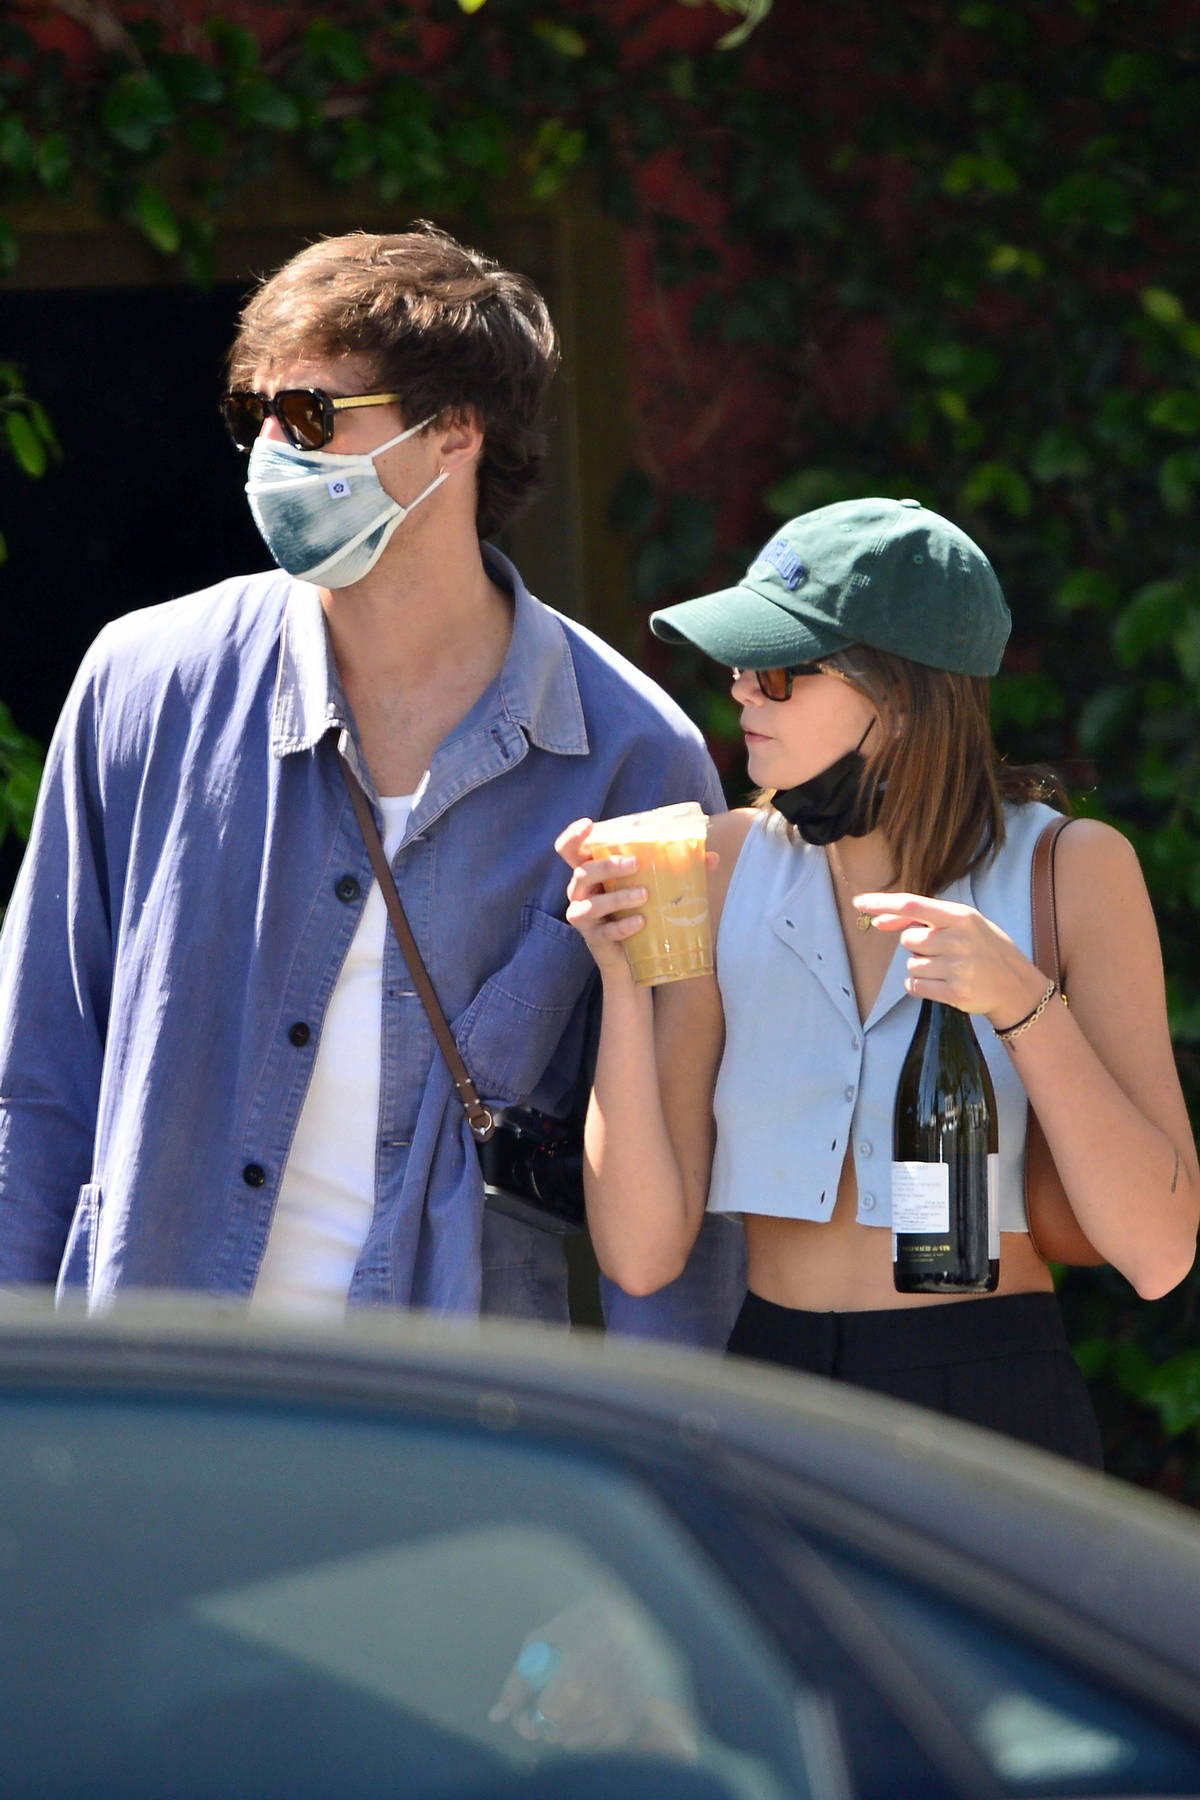 Kaia Gerber and Jacob Elordi stepped out for some iced coffee at Intelligentsia Coffee in Silver Lake, California